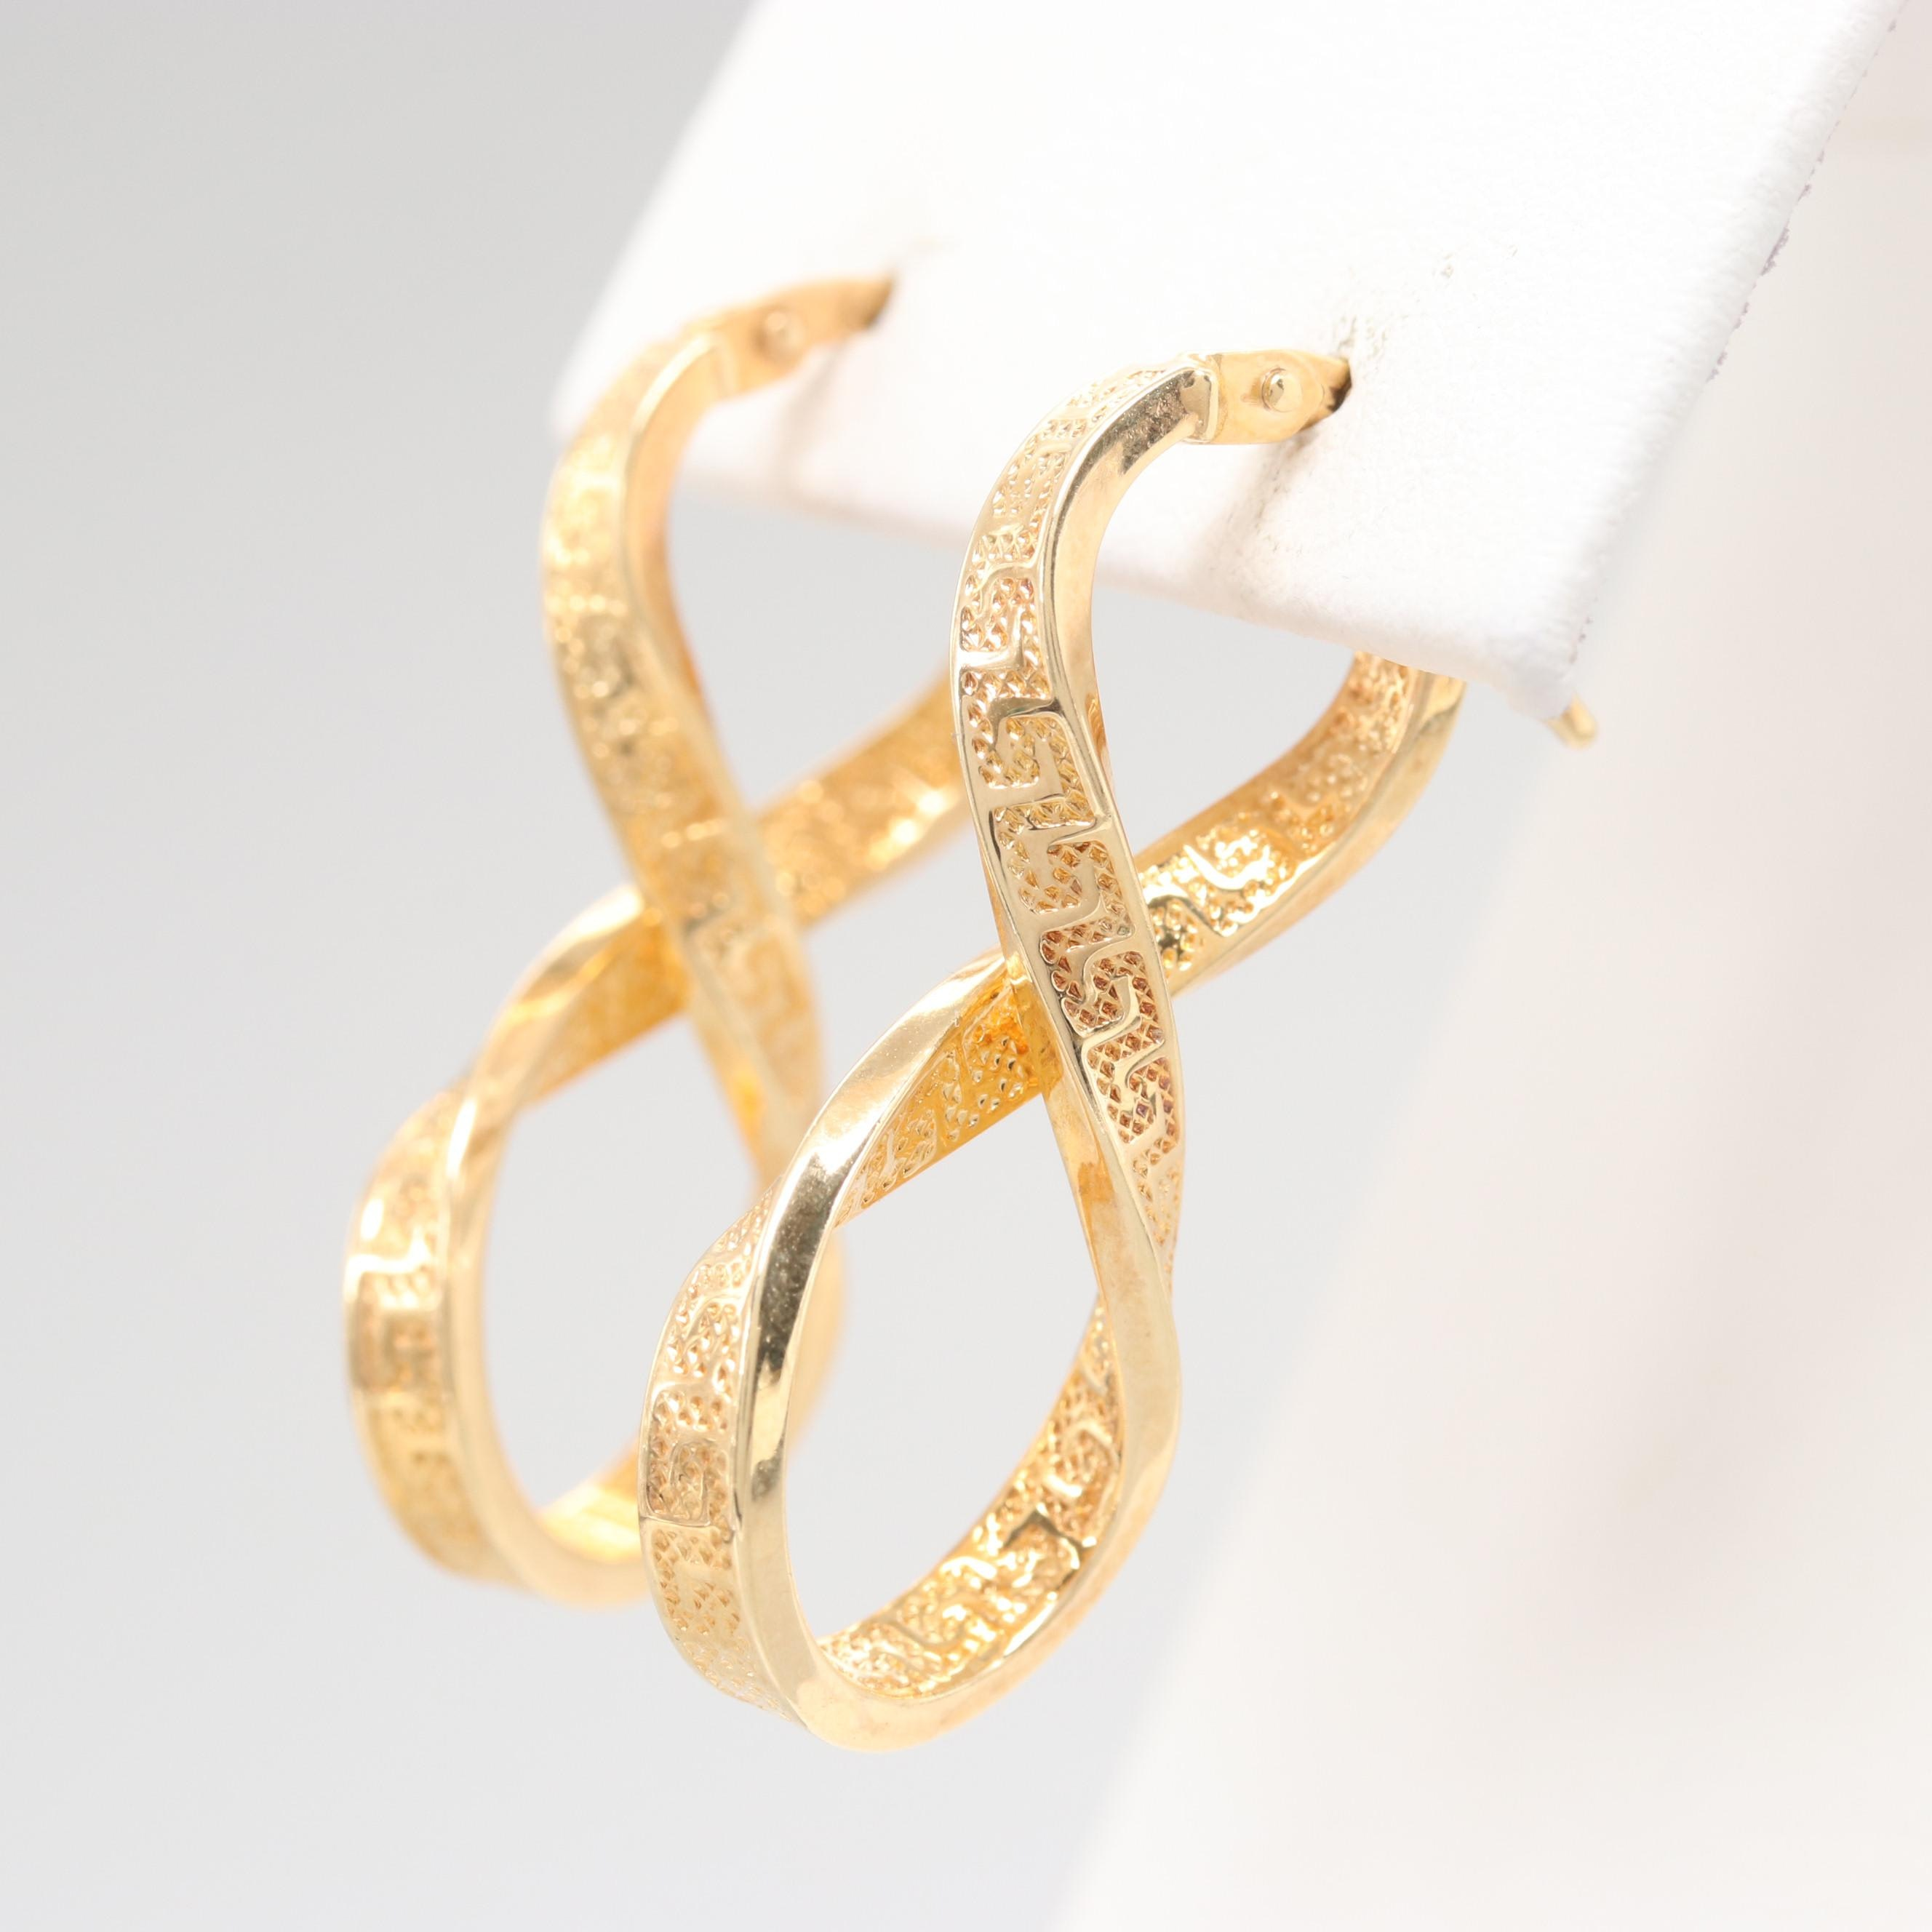 14K Yellow Gold Infinity Drop Earrings featuring Meander Pattern